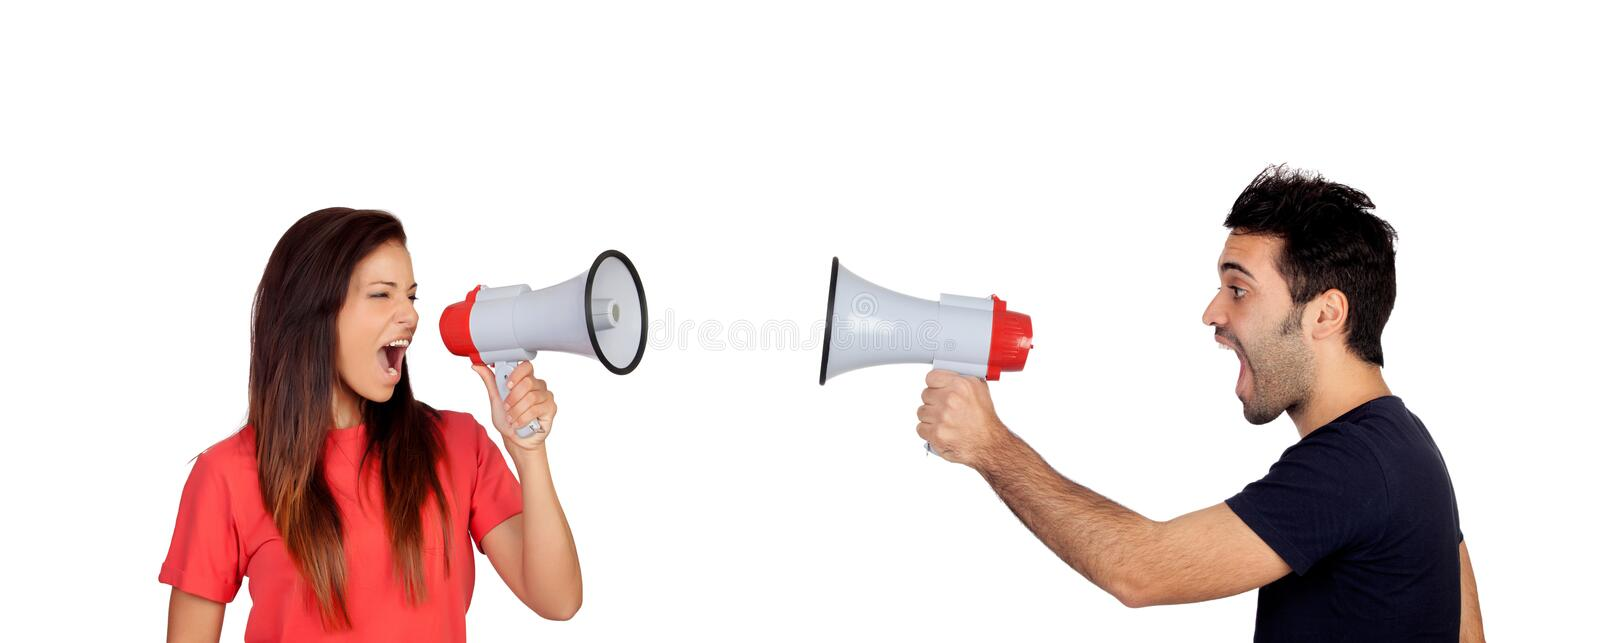 People with megaphones royalty free stock image